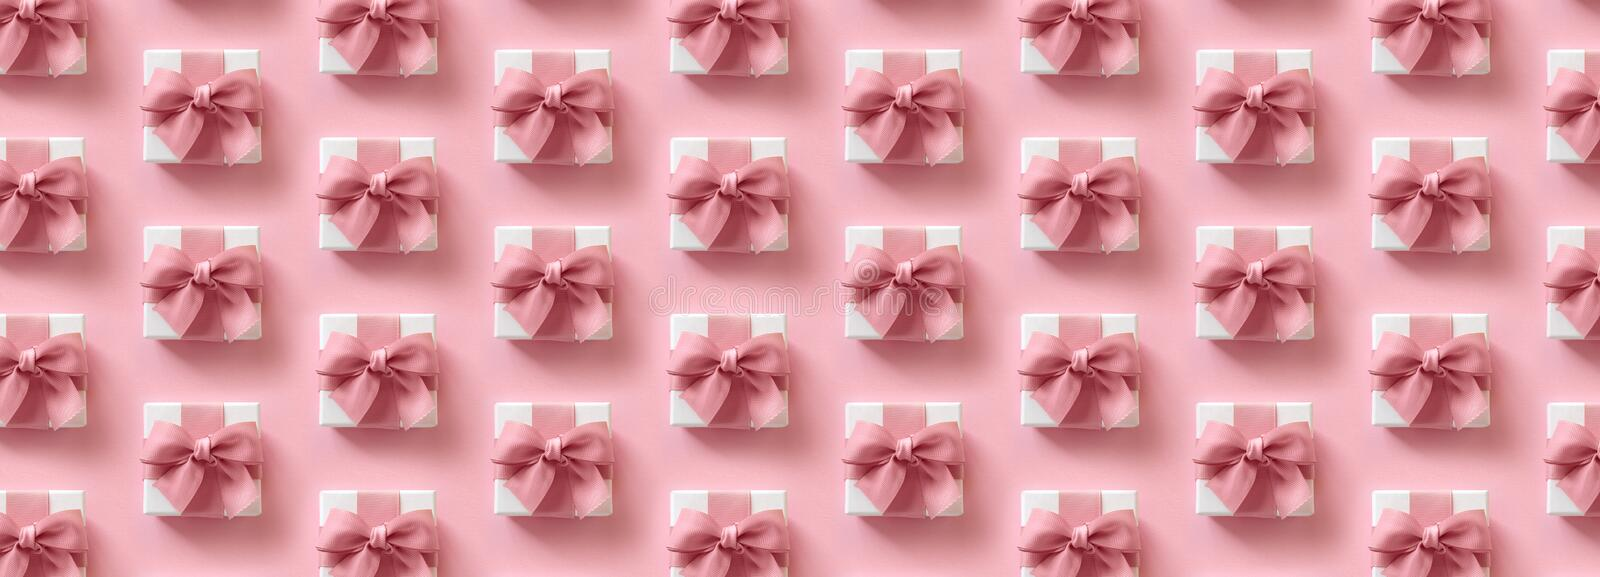 Background pattern with gift parcels royalty free stock images